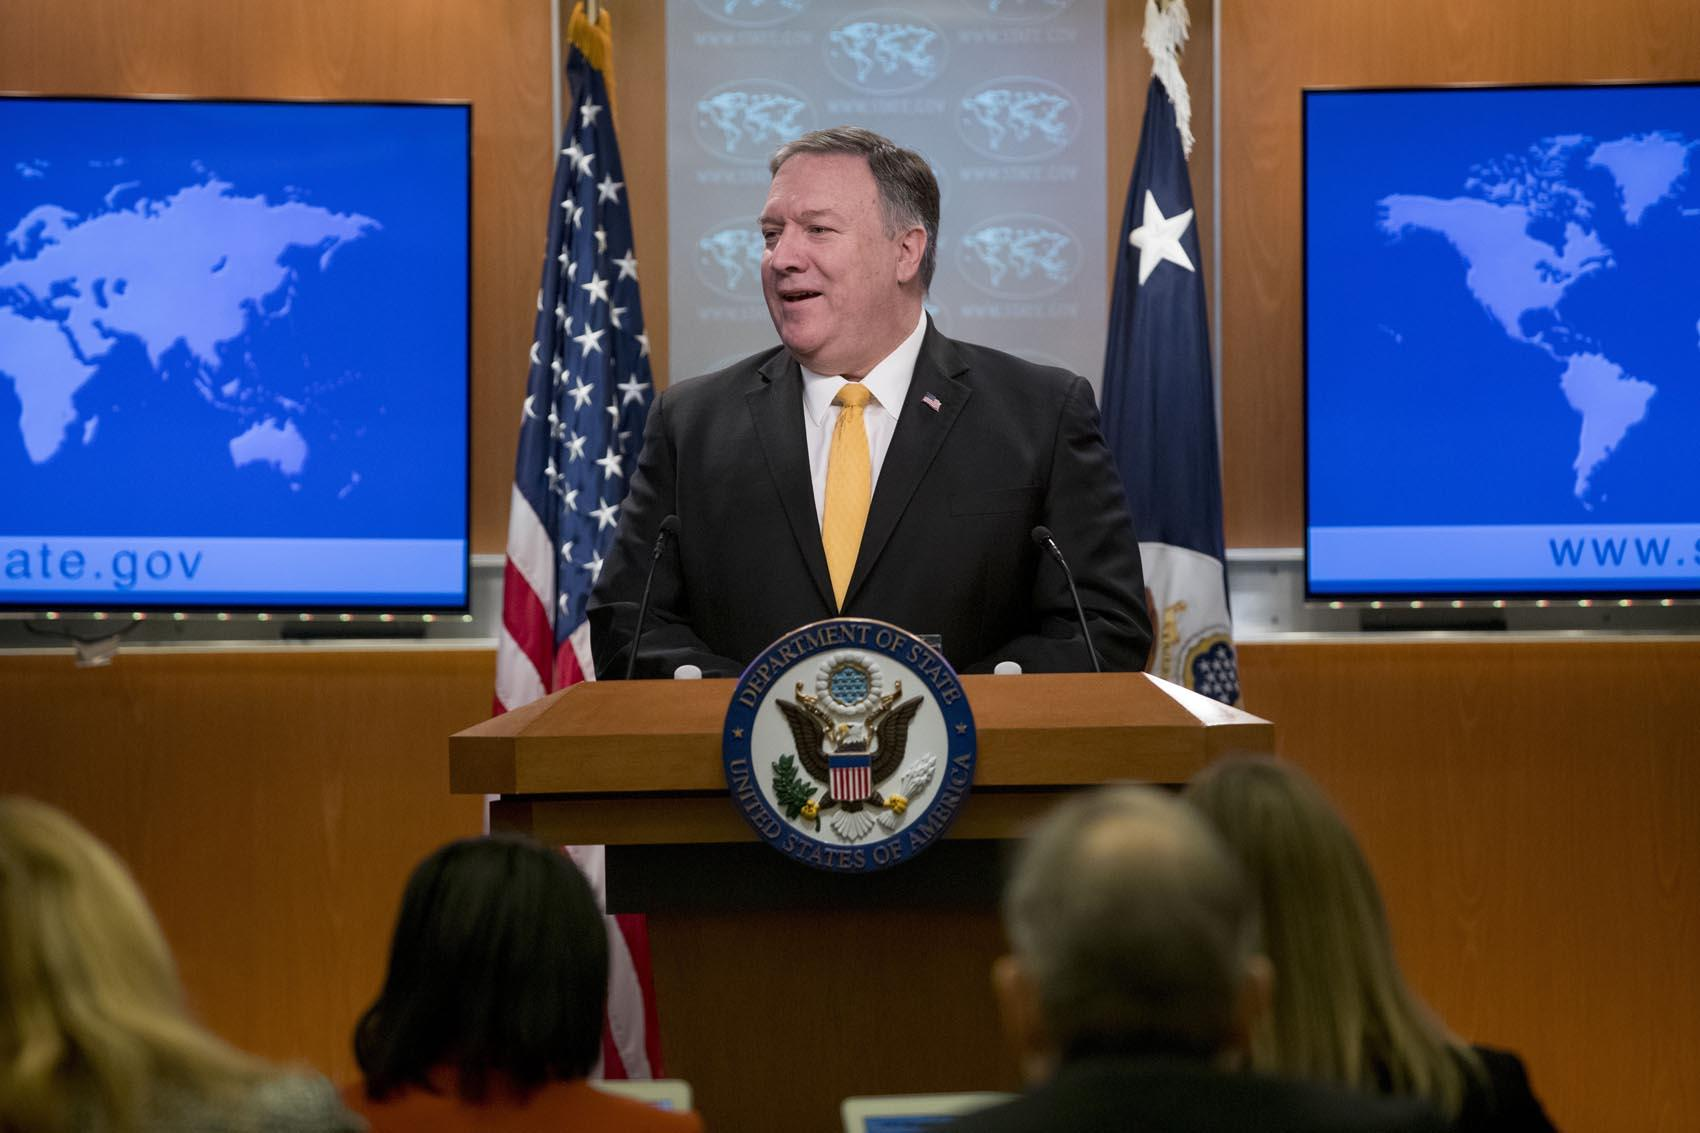 Secretary of State Mike Pompeo speaks at a news conference at the State Department in Washington Friday Feb. 1 2019. Secretary of State Mike Pompeo has announced that the U.S. is pulling out of a treaty with Russia that's been a centerpiece of arm